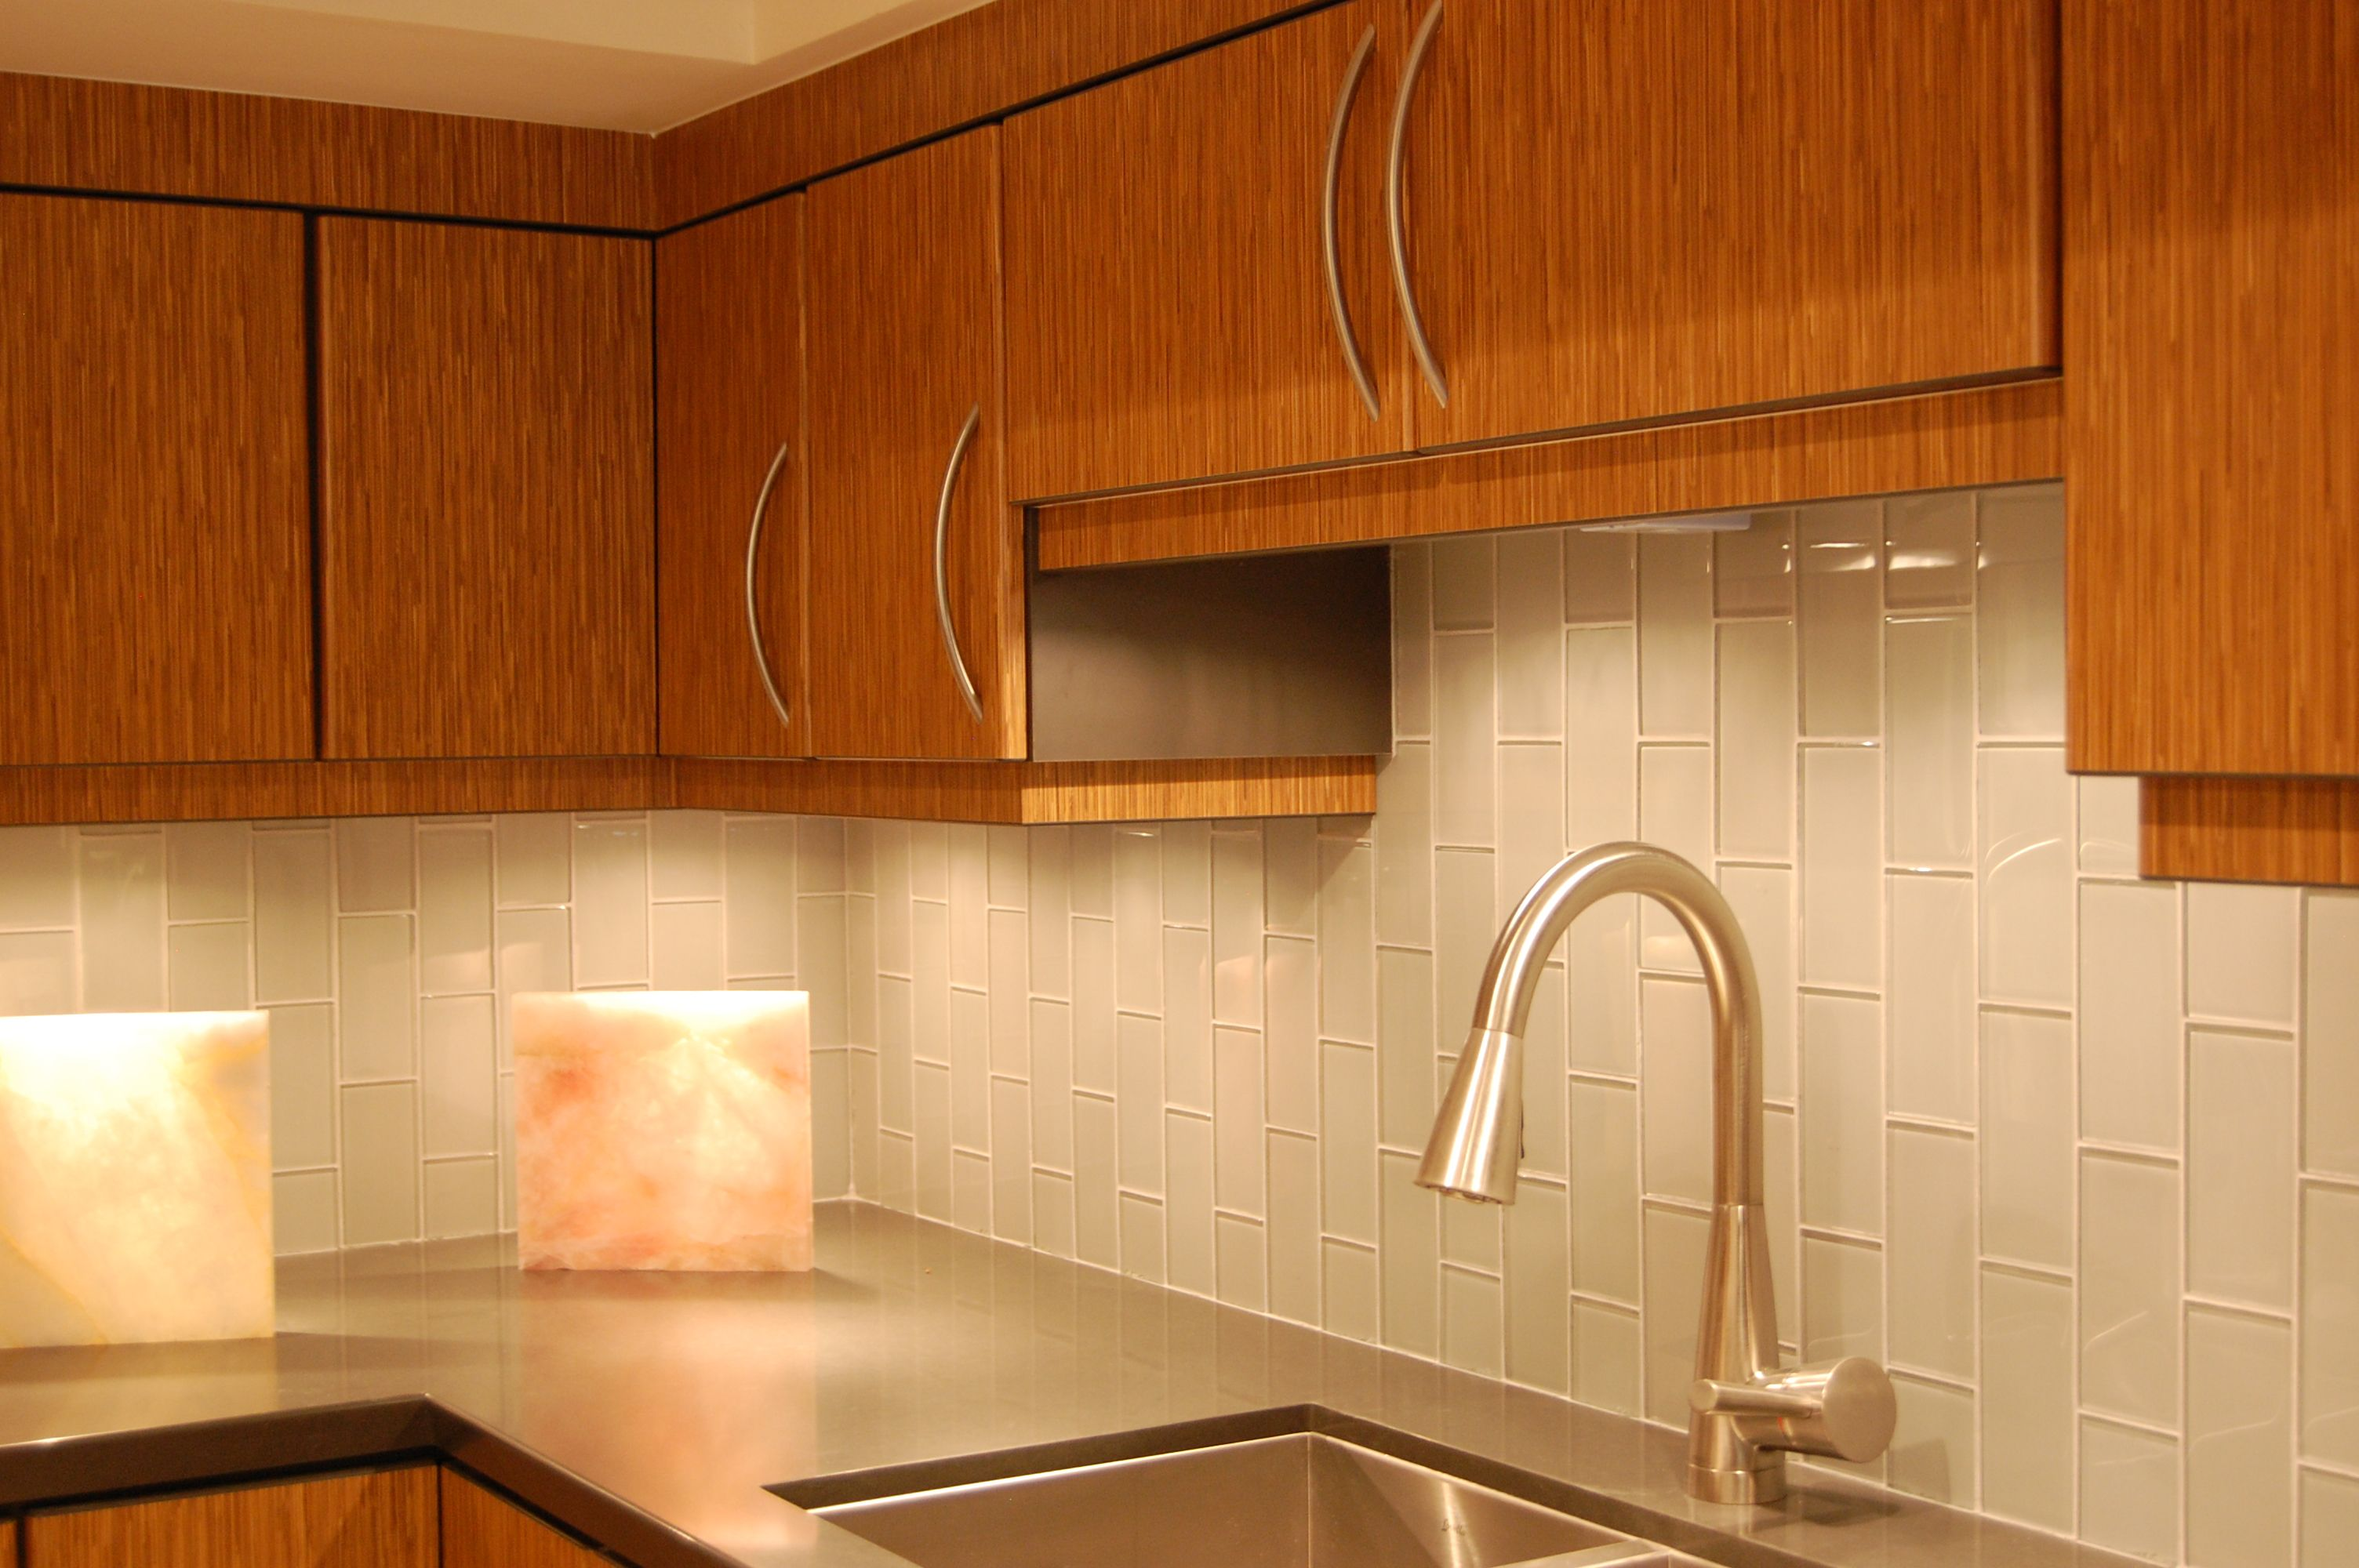 Kitchen backsplash glass on pinterest kitchen backsplash glass tiles and kitchen tiles Kitchen design of tiles